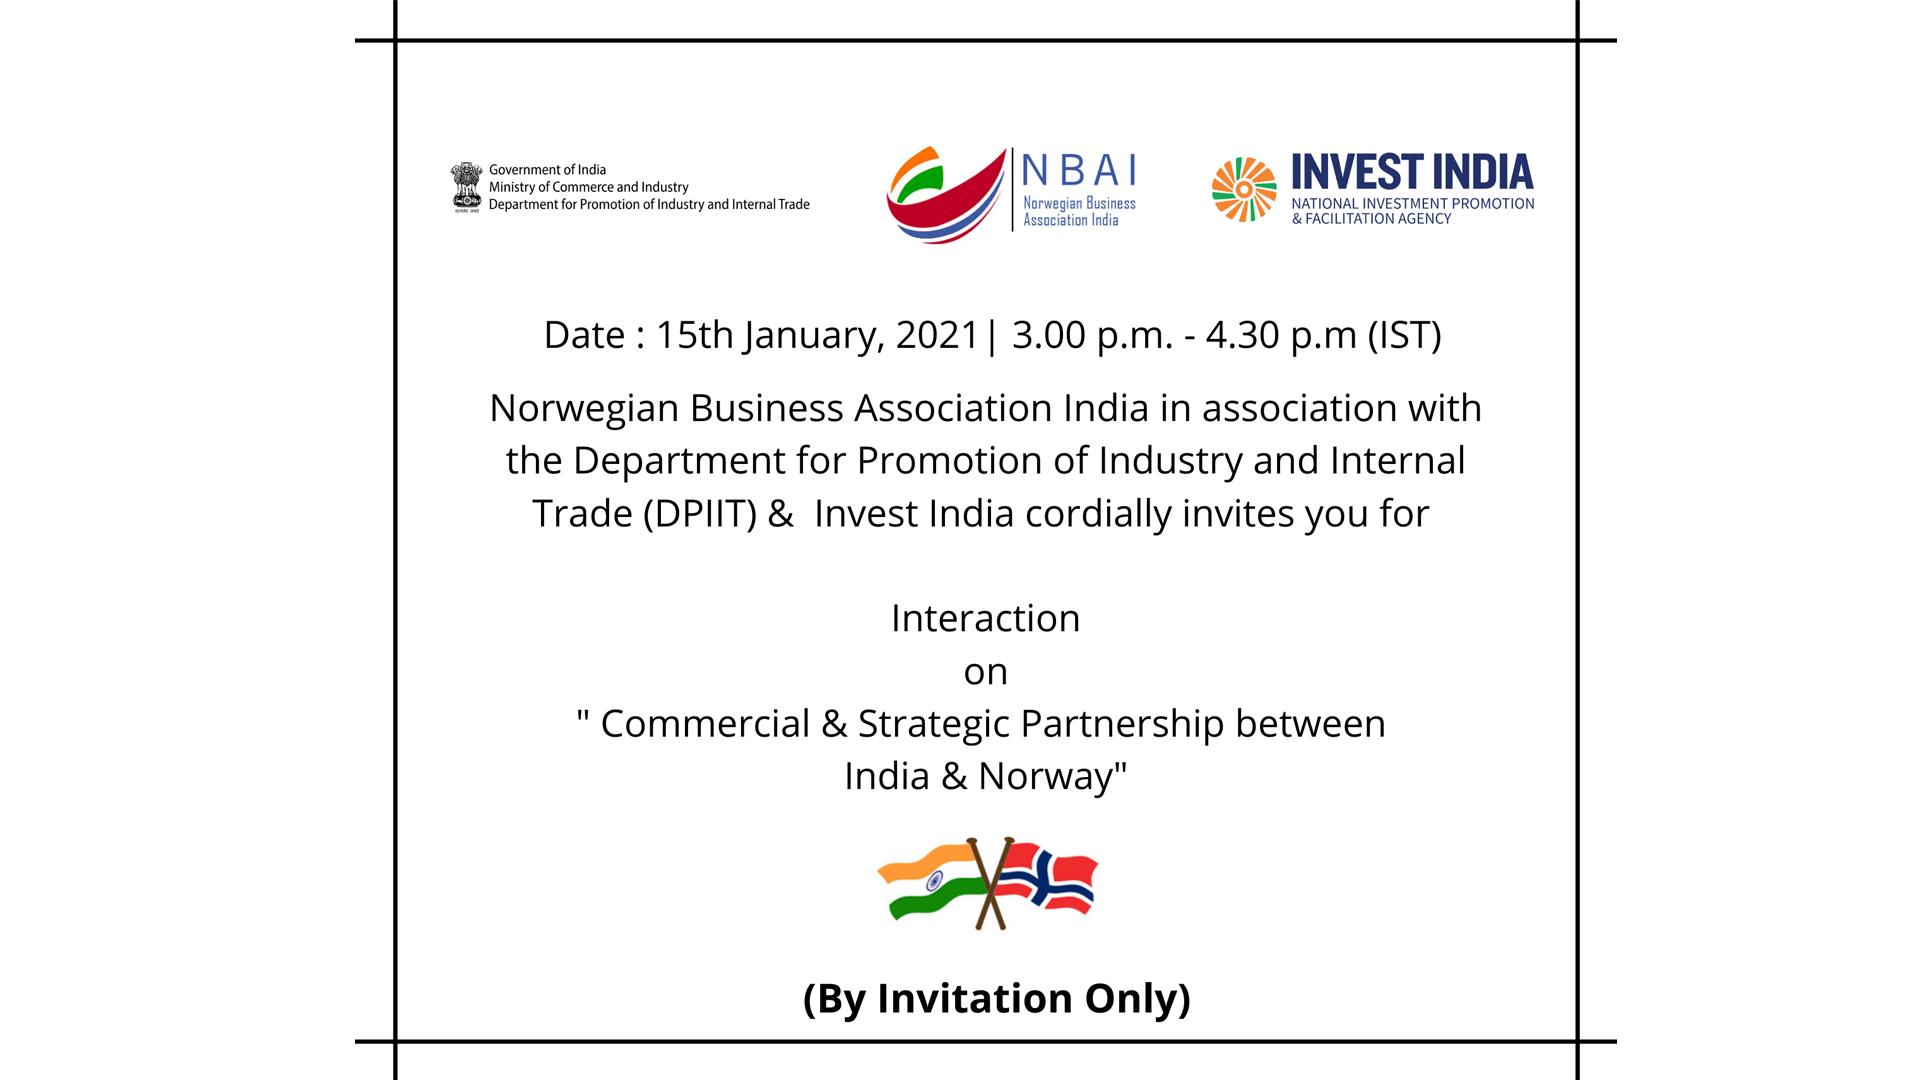 INTERACTION ON COMMERCIAL & STRATEGIC PARTNERSHIP BETWEEN INDIA & NORWAY